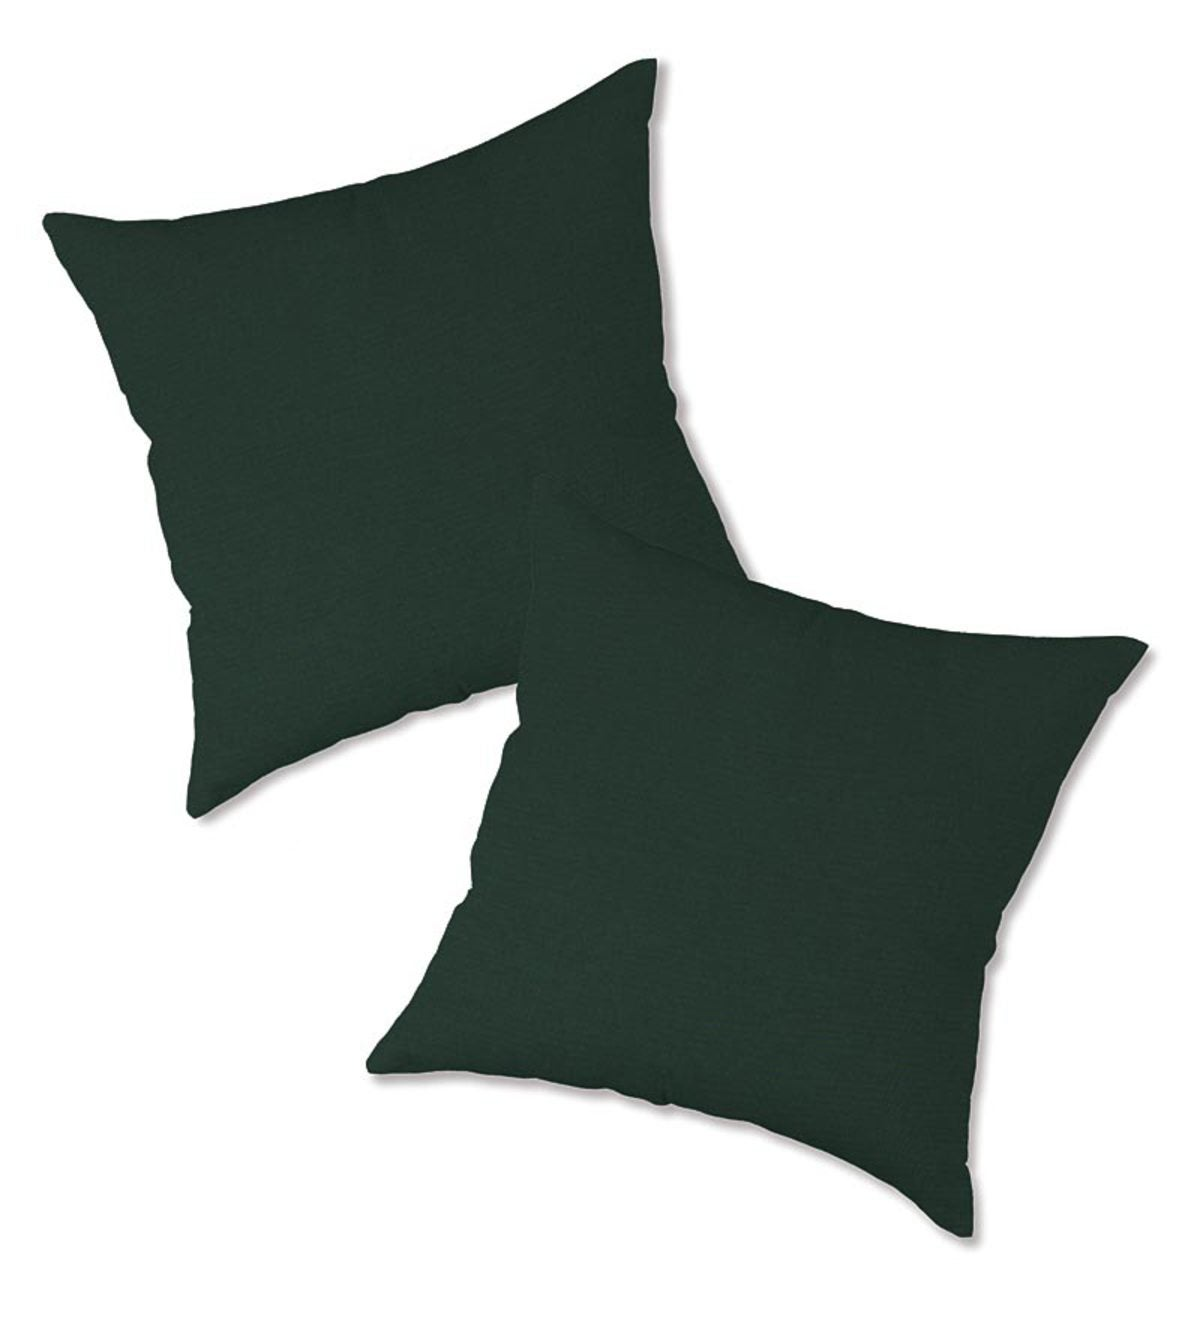 Set of 2 Replacement Pillows for Rope Hammock Swing - Forest Green